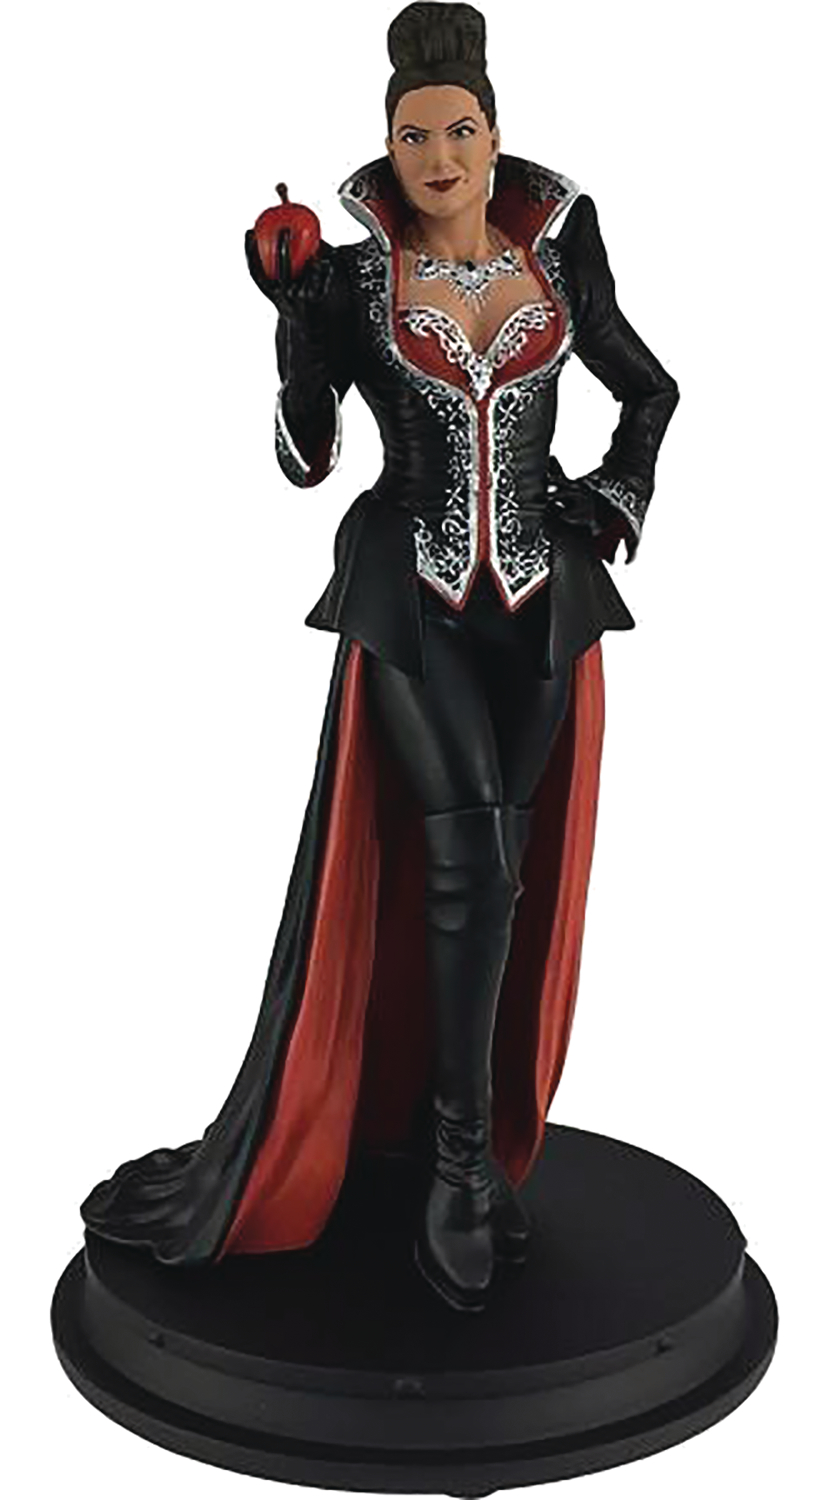 sdcc 2017 once upon a time evil queen deluxe statue c